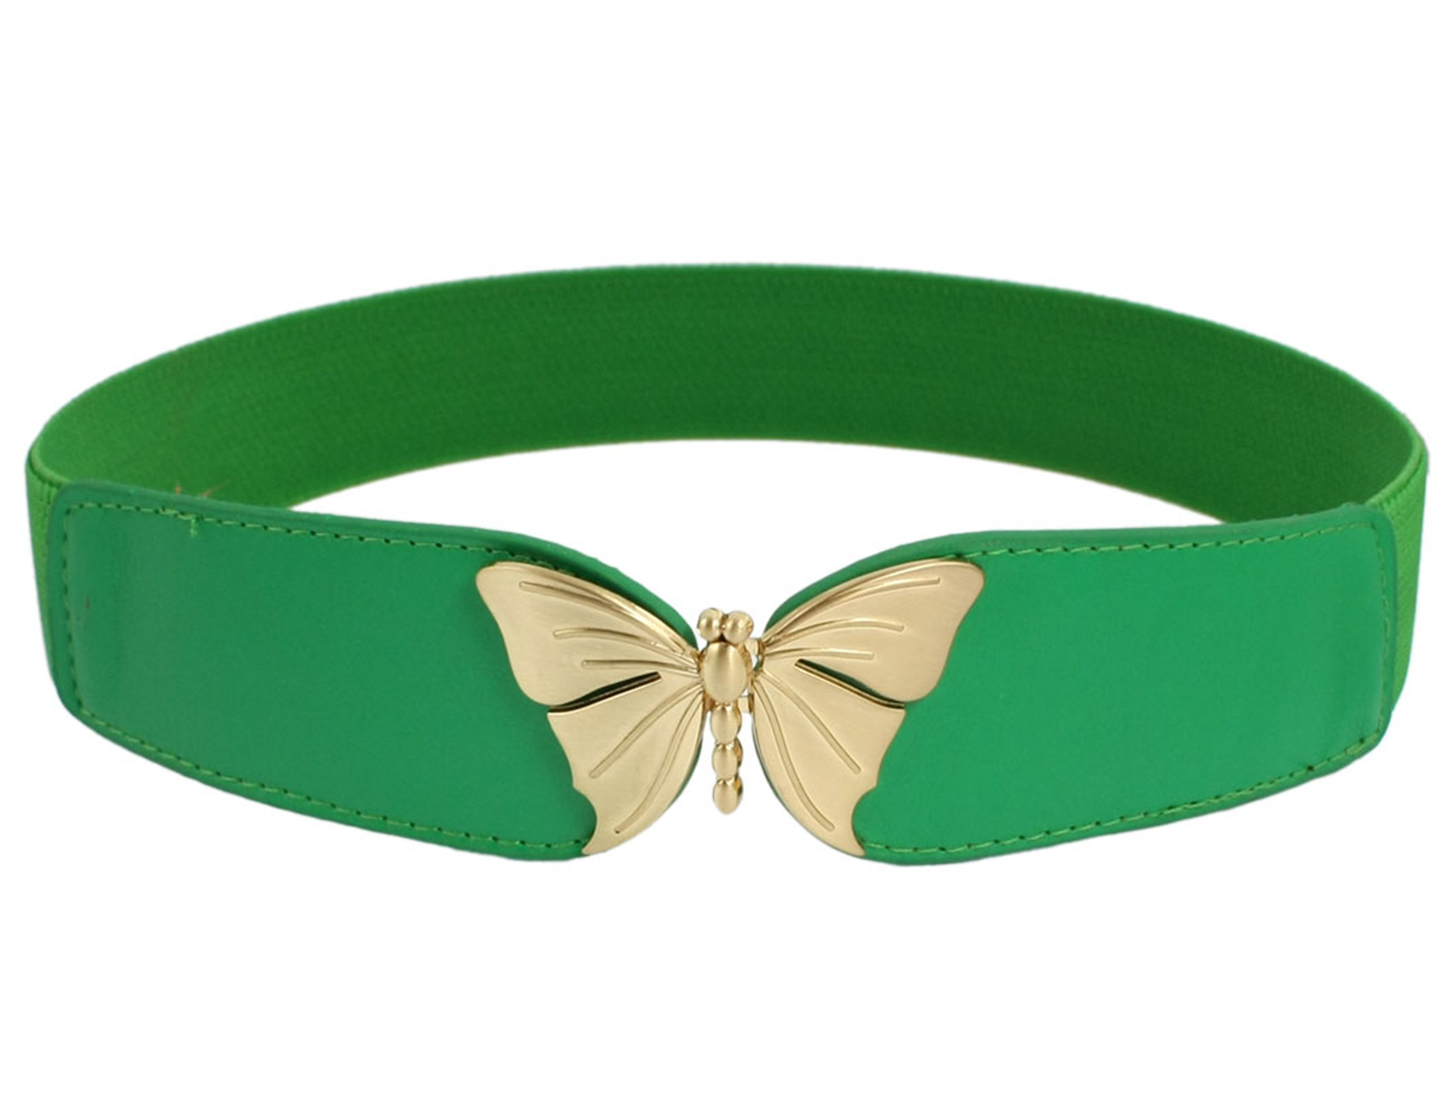 Butterfly Shape Metal Interlocking Buckle Waist Belt Waistband Green